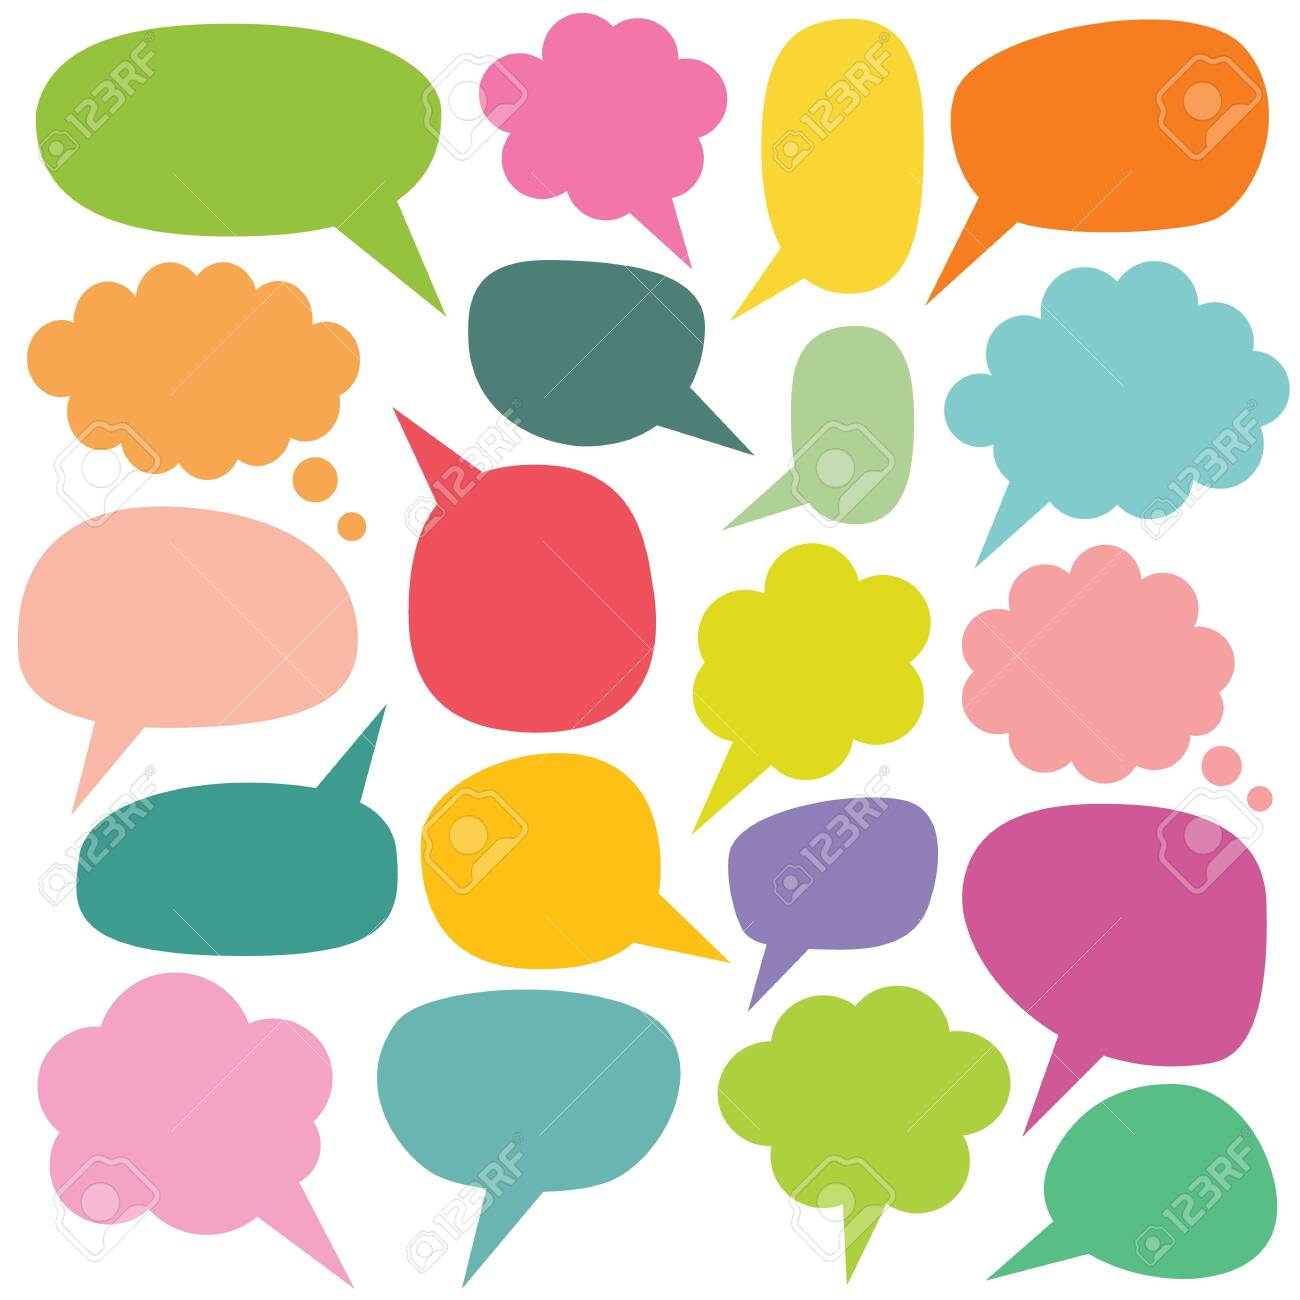 Colorful speech and thought bubbles set - 124055350